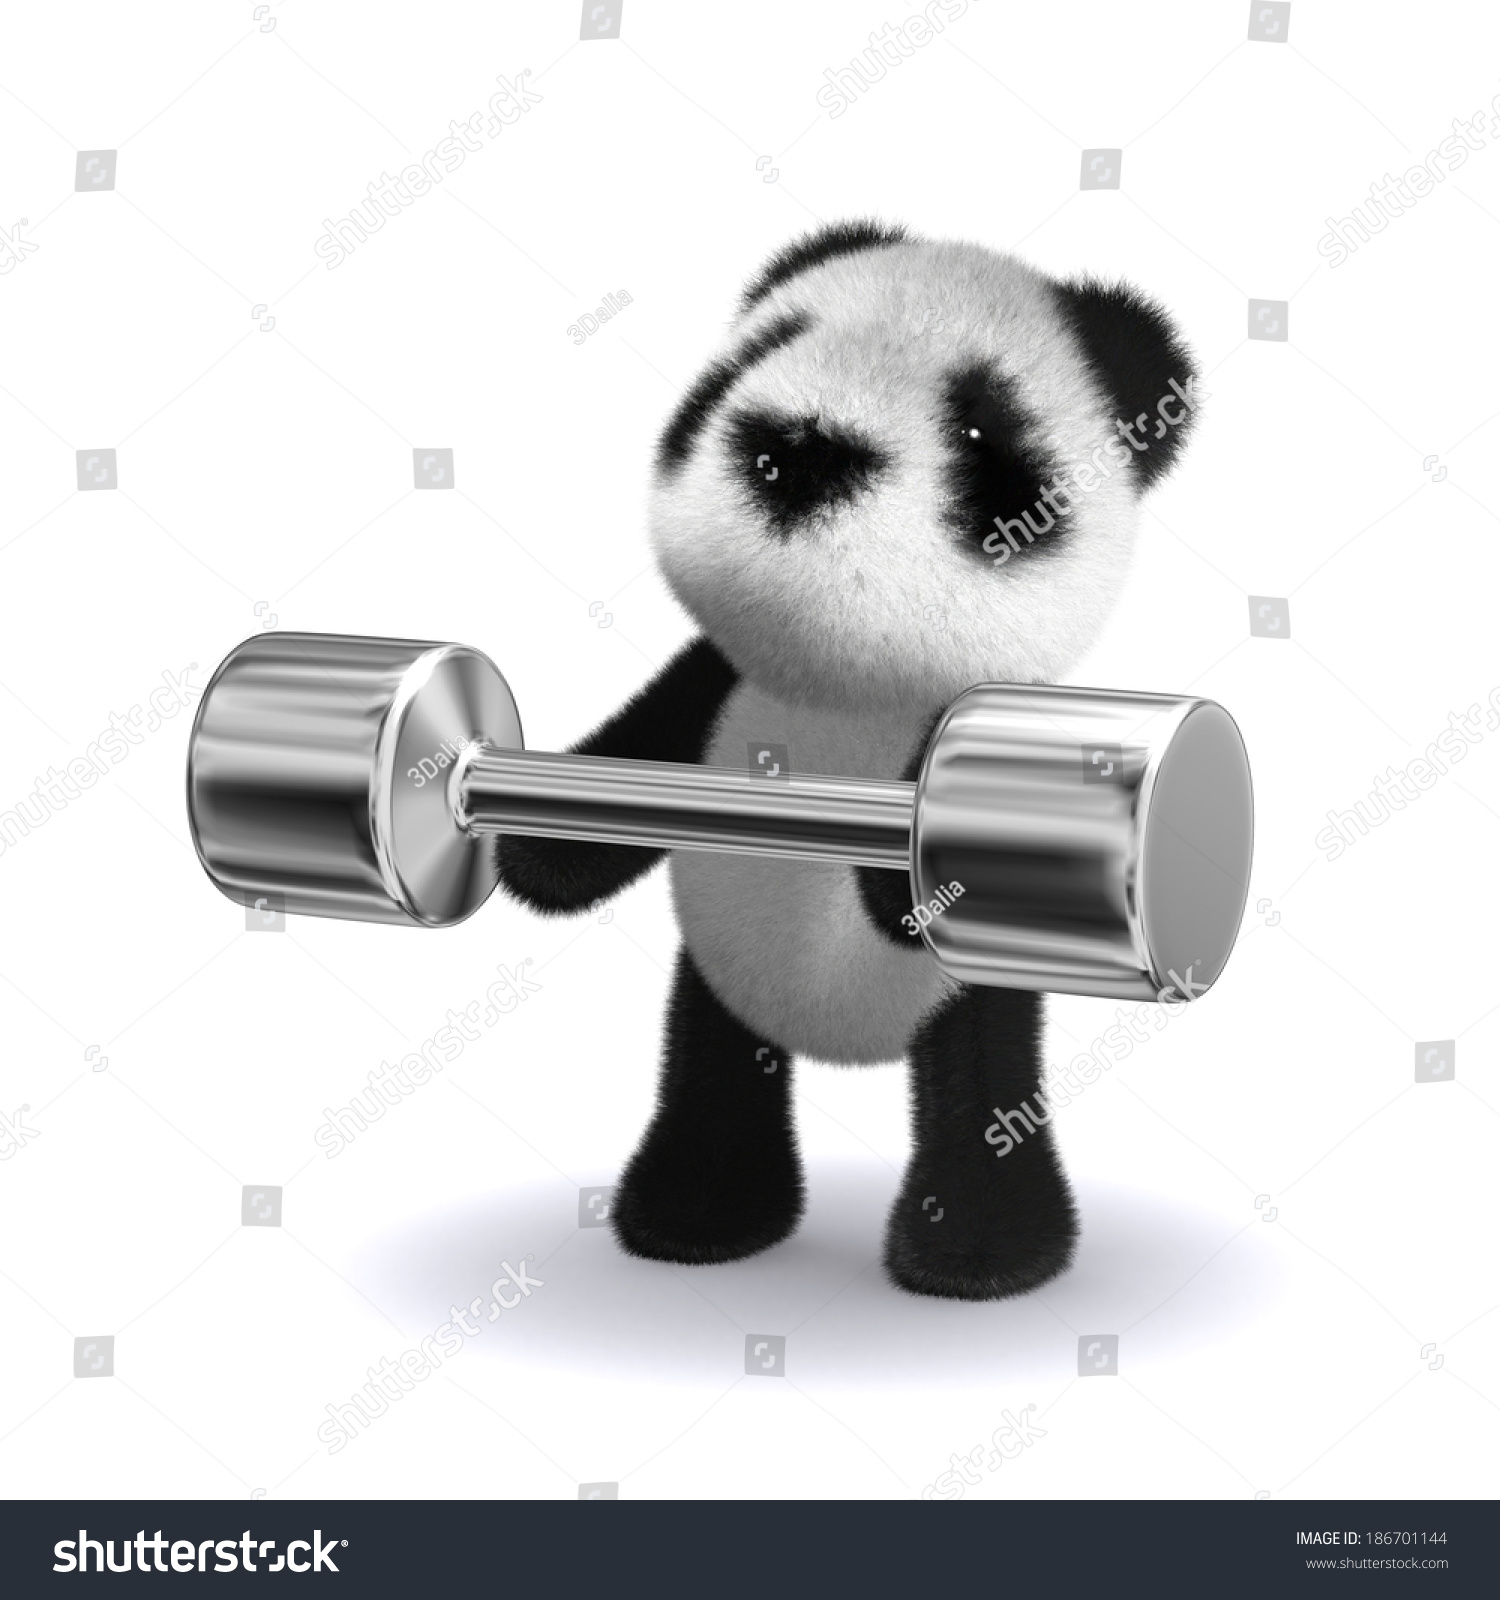 3d Render Panda Lifting Some Weights Stock Illustration 186701144